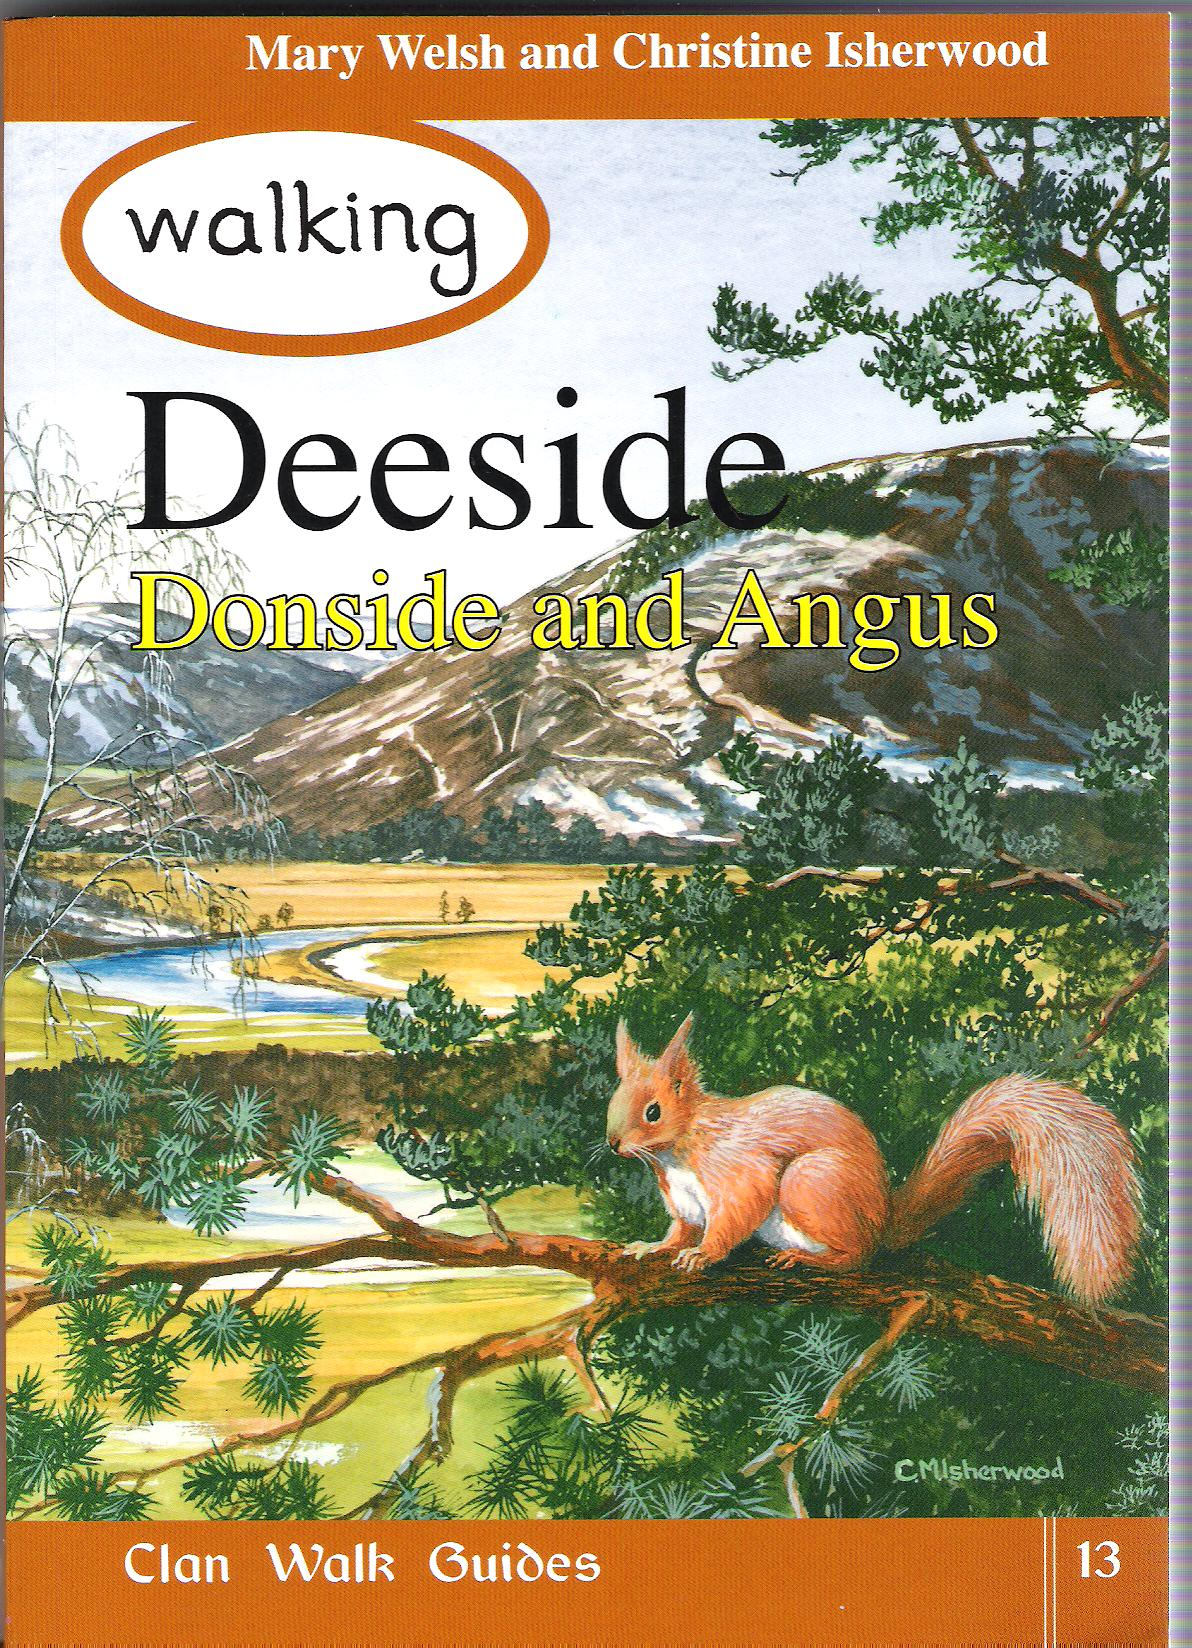 Image for Walking Deeside, Donside and Angus.